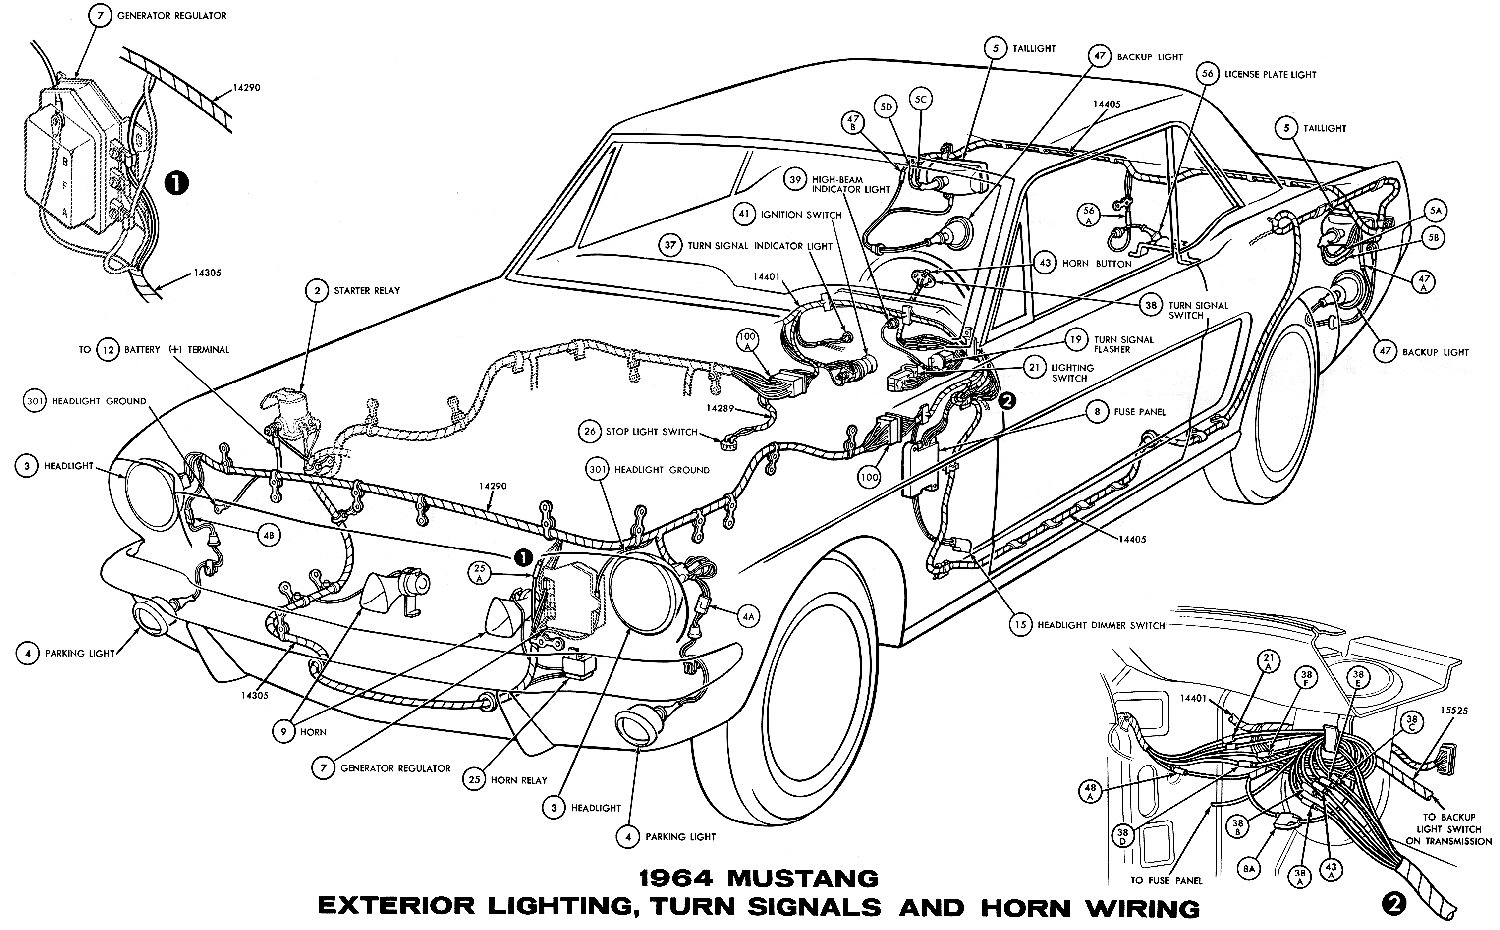 1964 Mustang Wiring Diagrams Average Joe Restoration 1968 Ford F100 Turn Signal Diagram Sm1964h Exterior Lighting Signals And Horns Pictorial Or Schematic